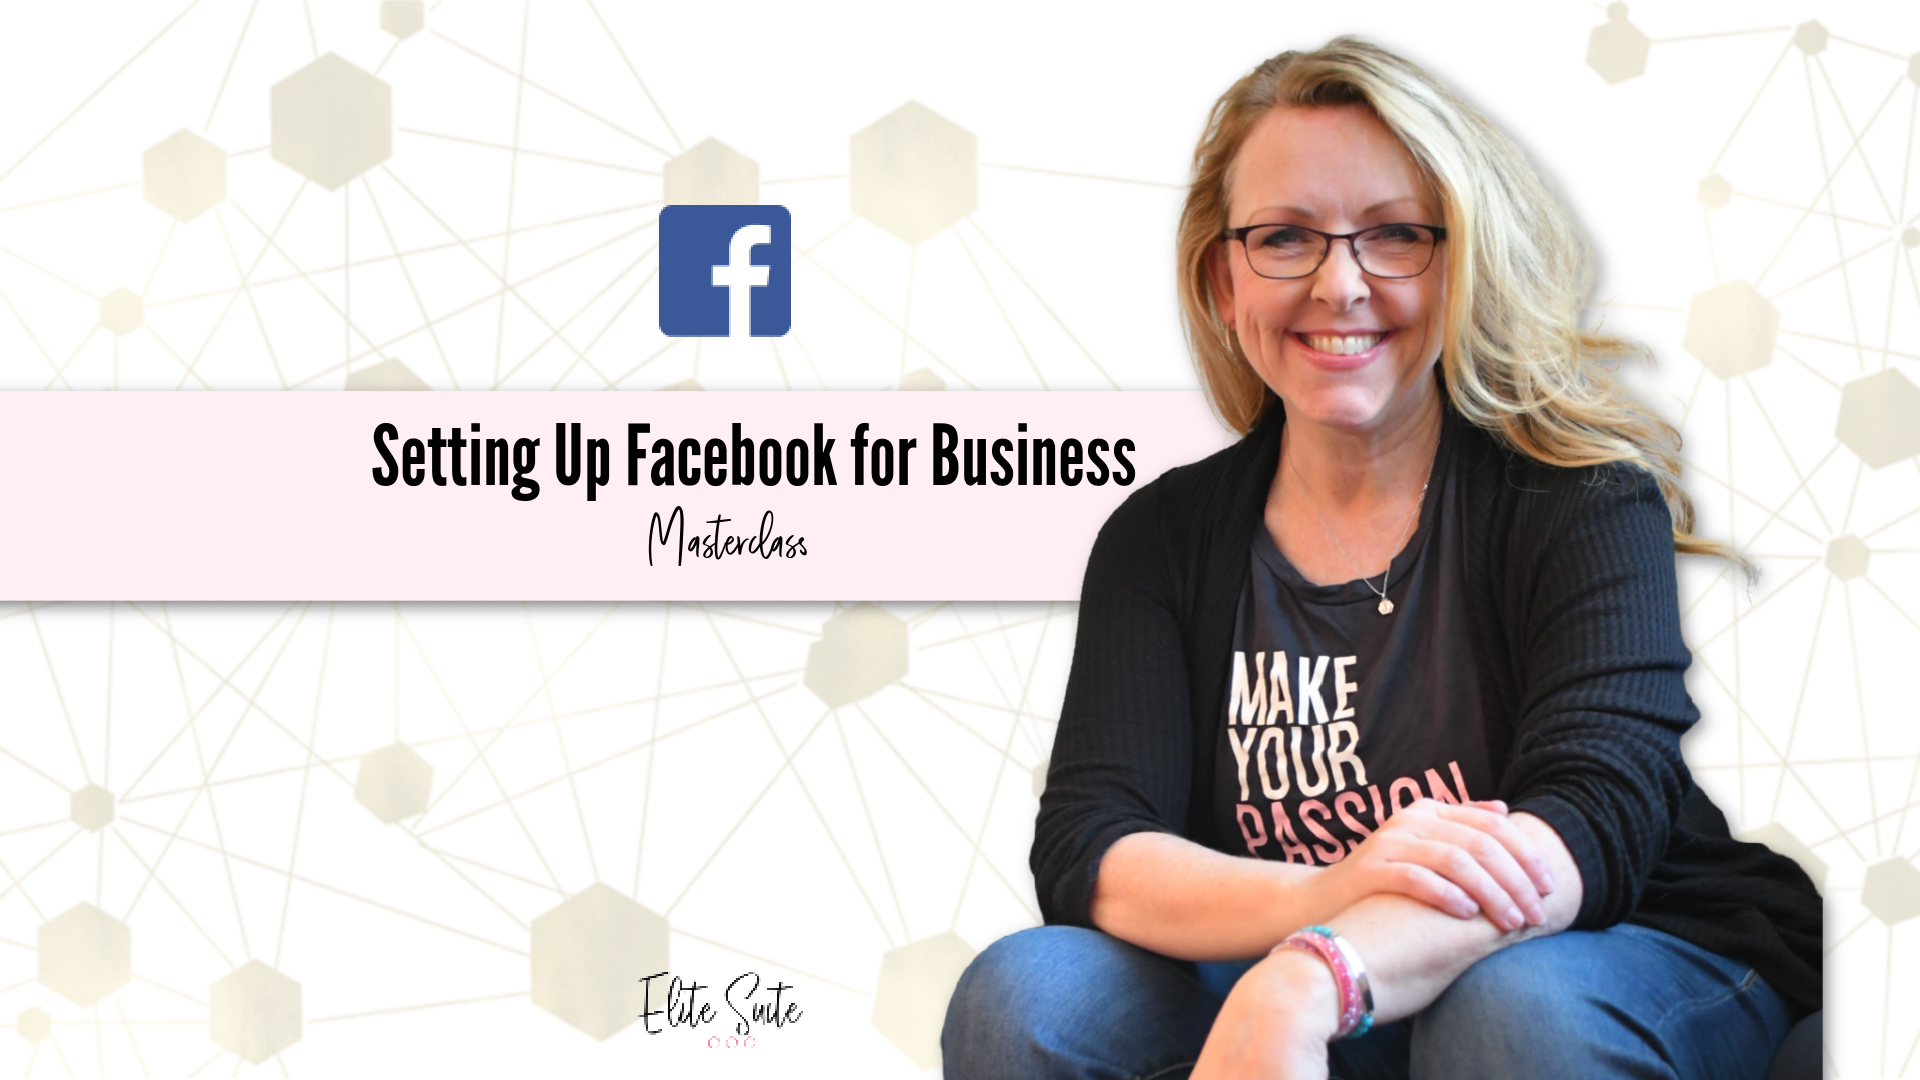 Setting up Facebook for Business masterclass title overlay